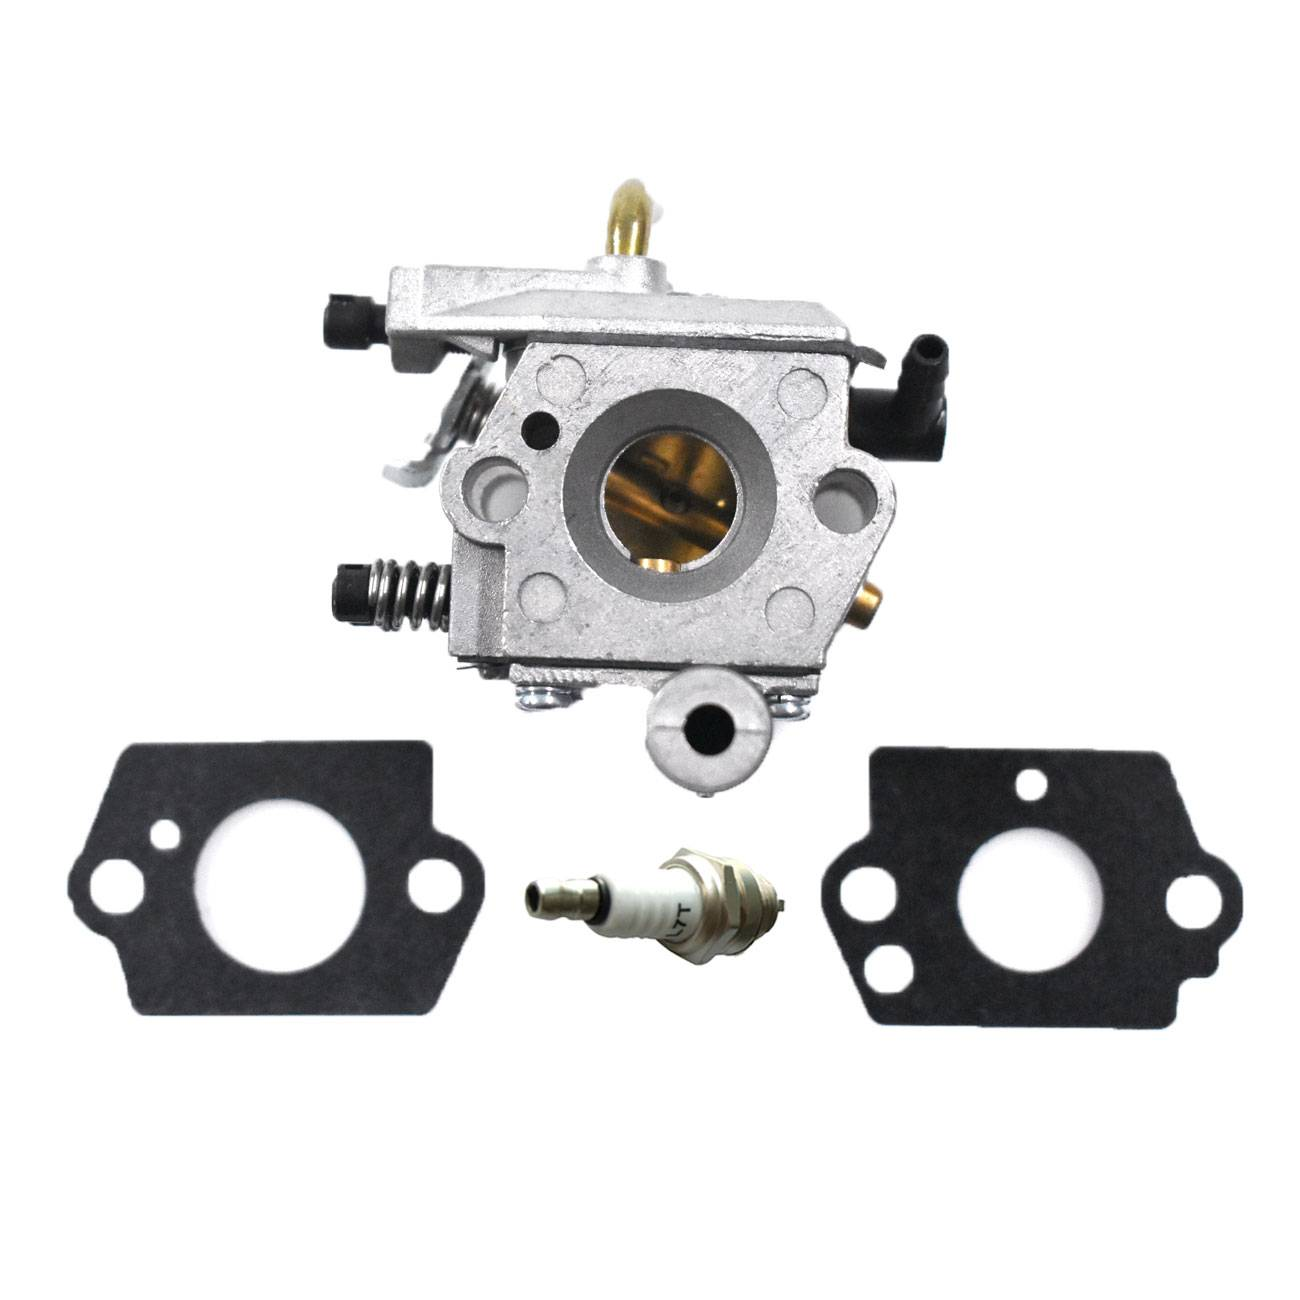 Carburetor Carb & 2*gasket & Spark Plug Fit STIHL 024 026 MS240 260 CHAINSAW